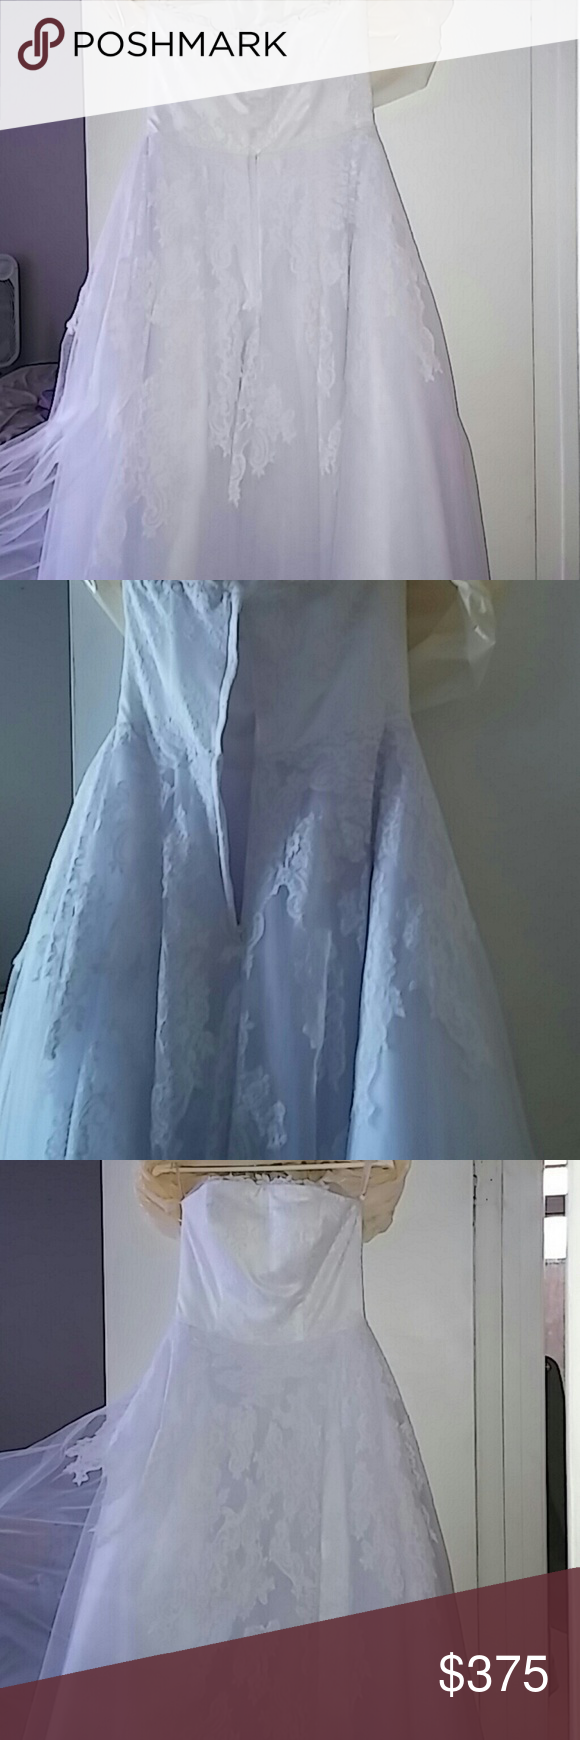 Say yes to this dress wedding gown my posh closet pinterest